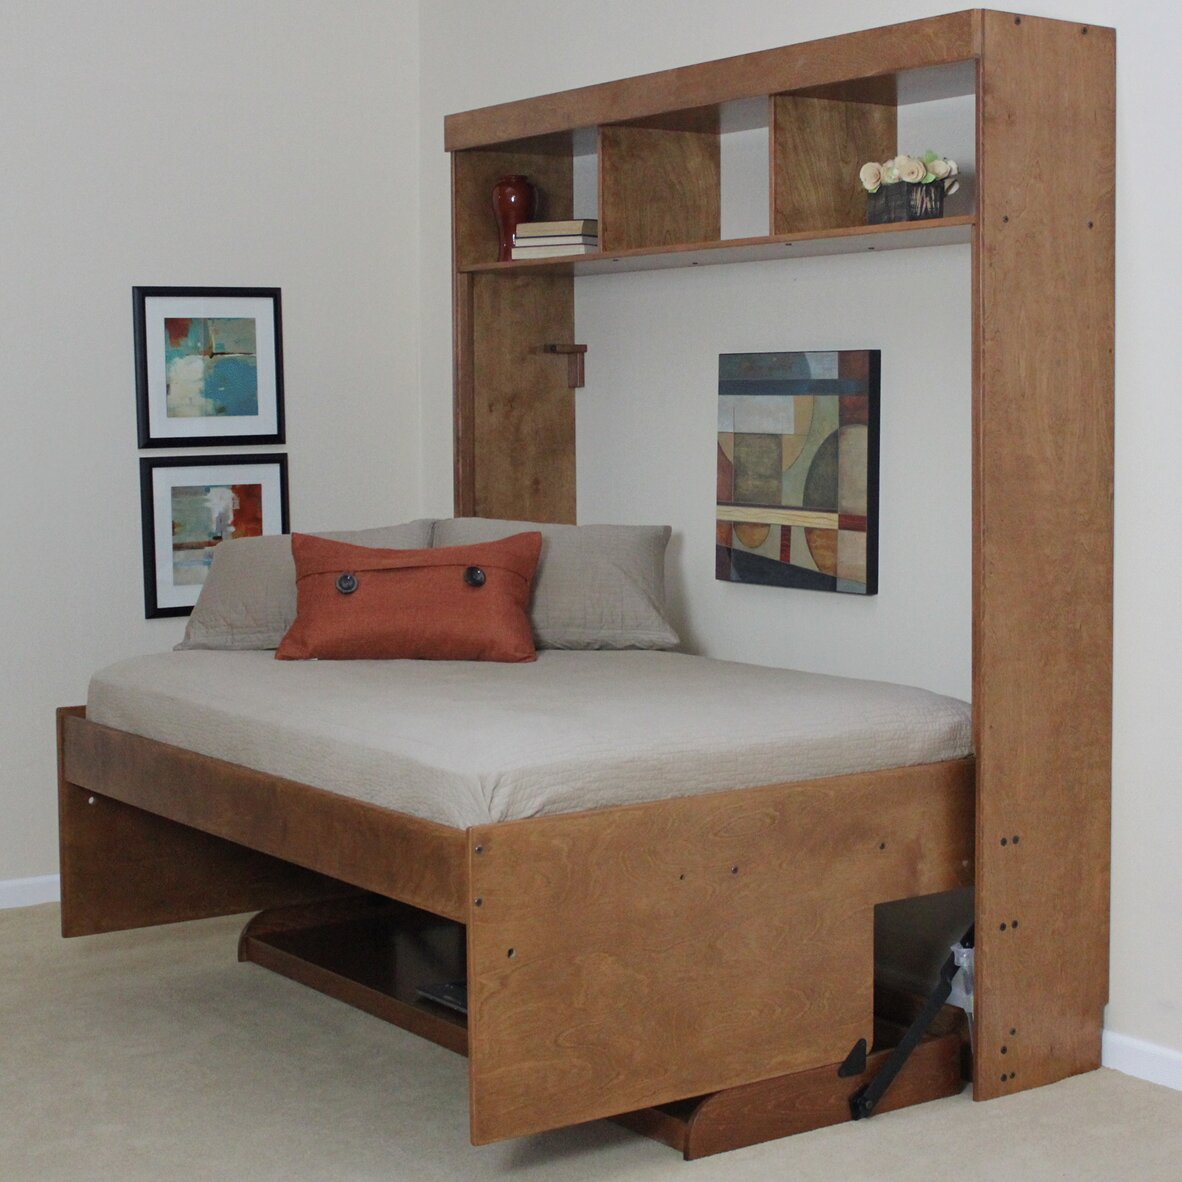 mattress queen desk pin wonderful trundle murphy beds with bed wall